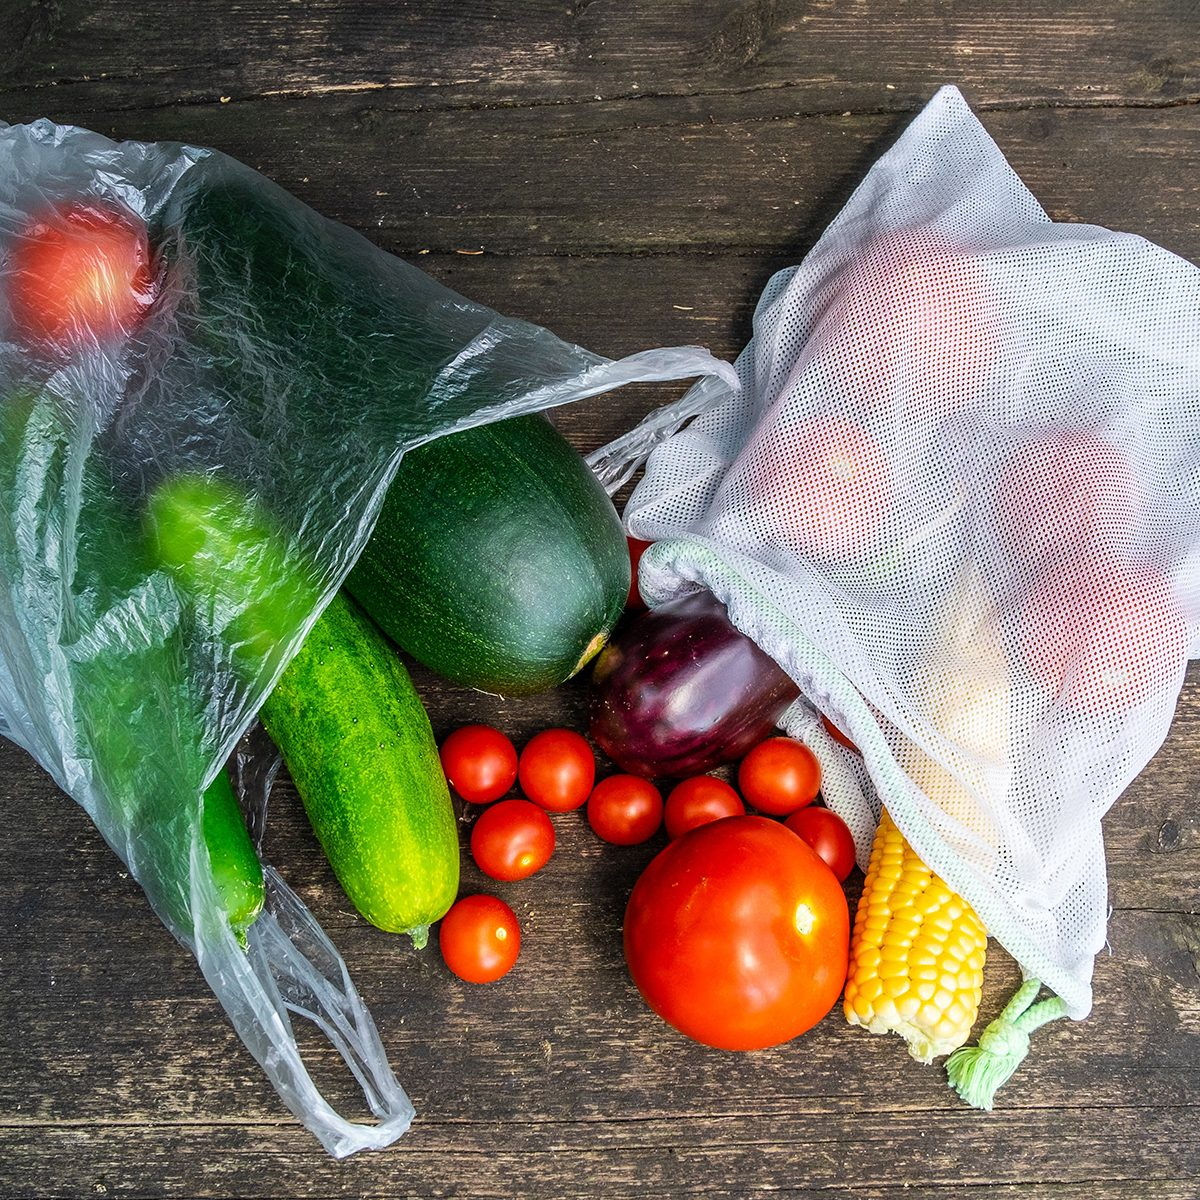 Plastic bags filled with produce